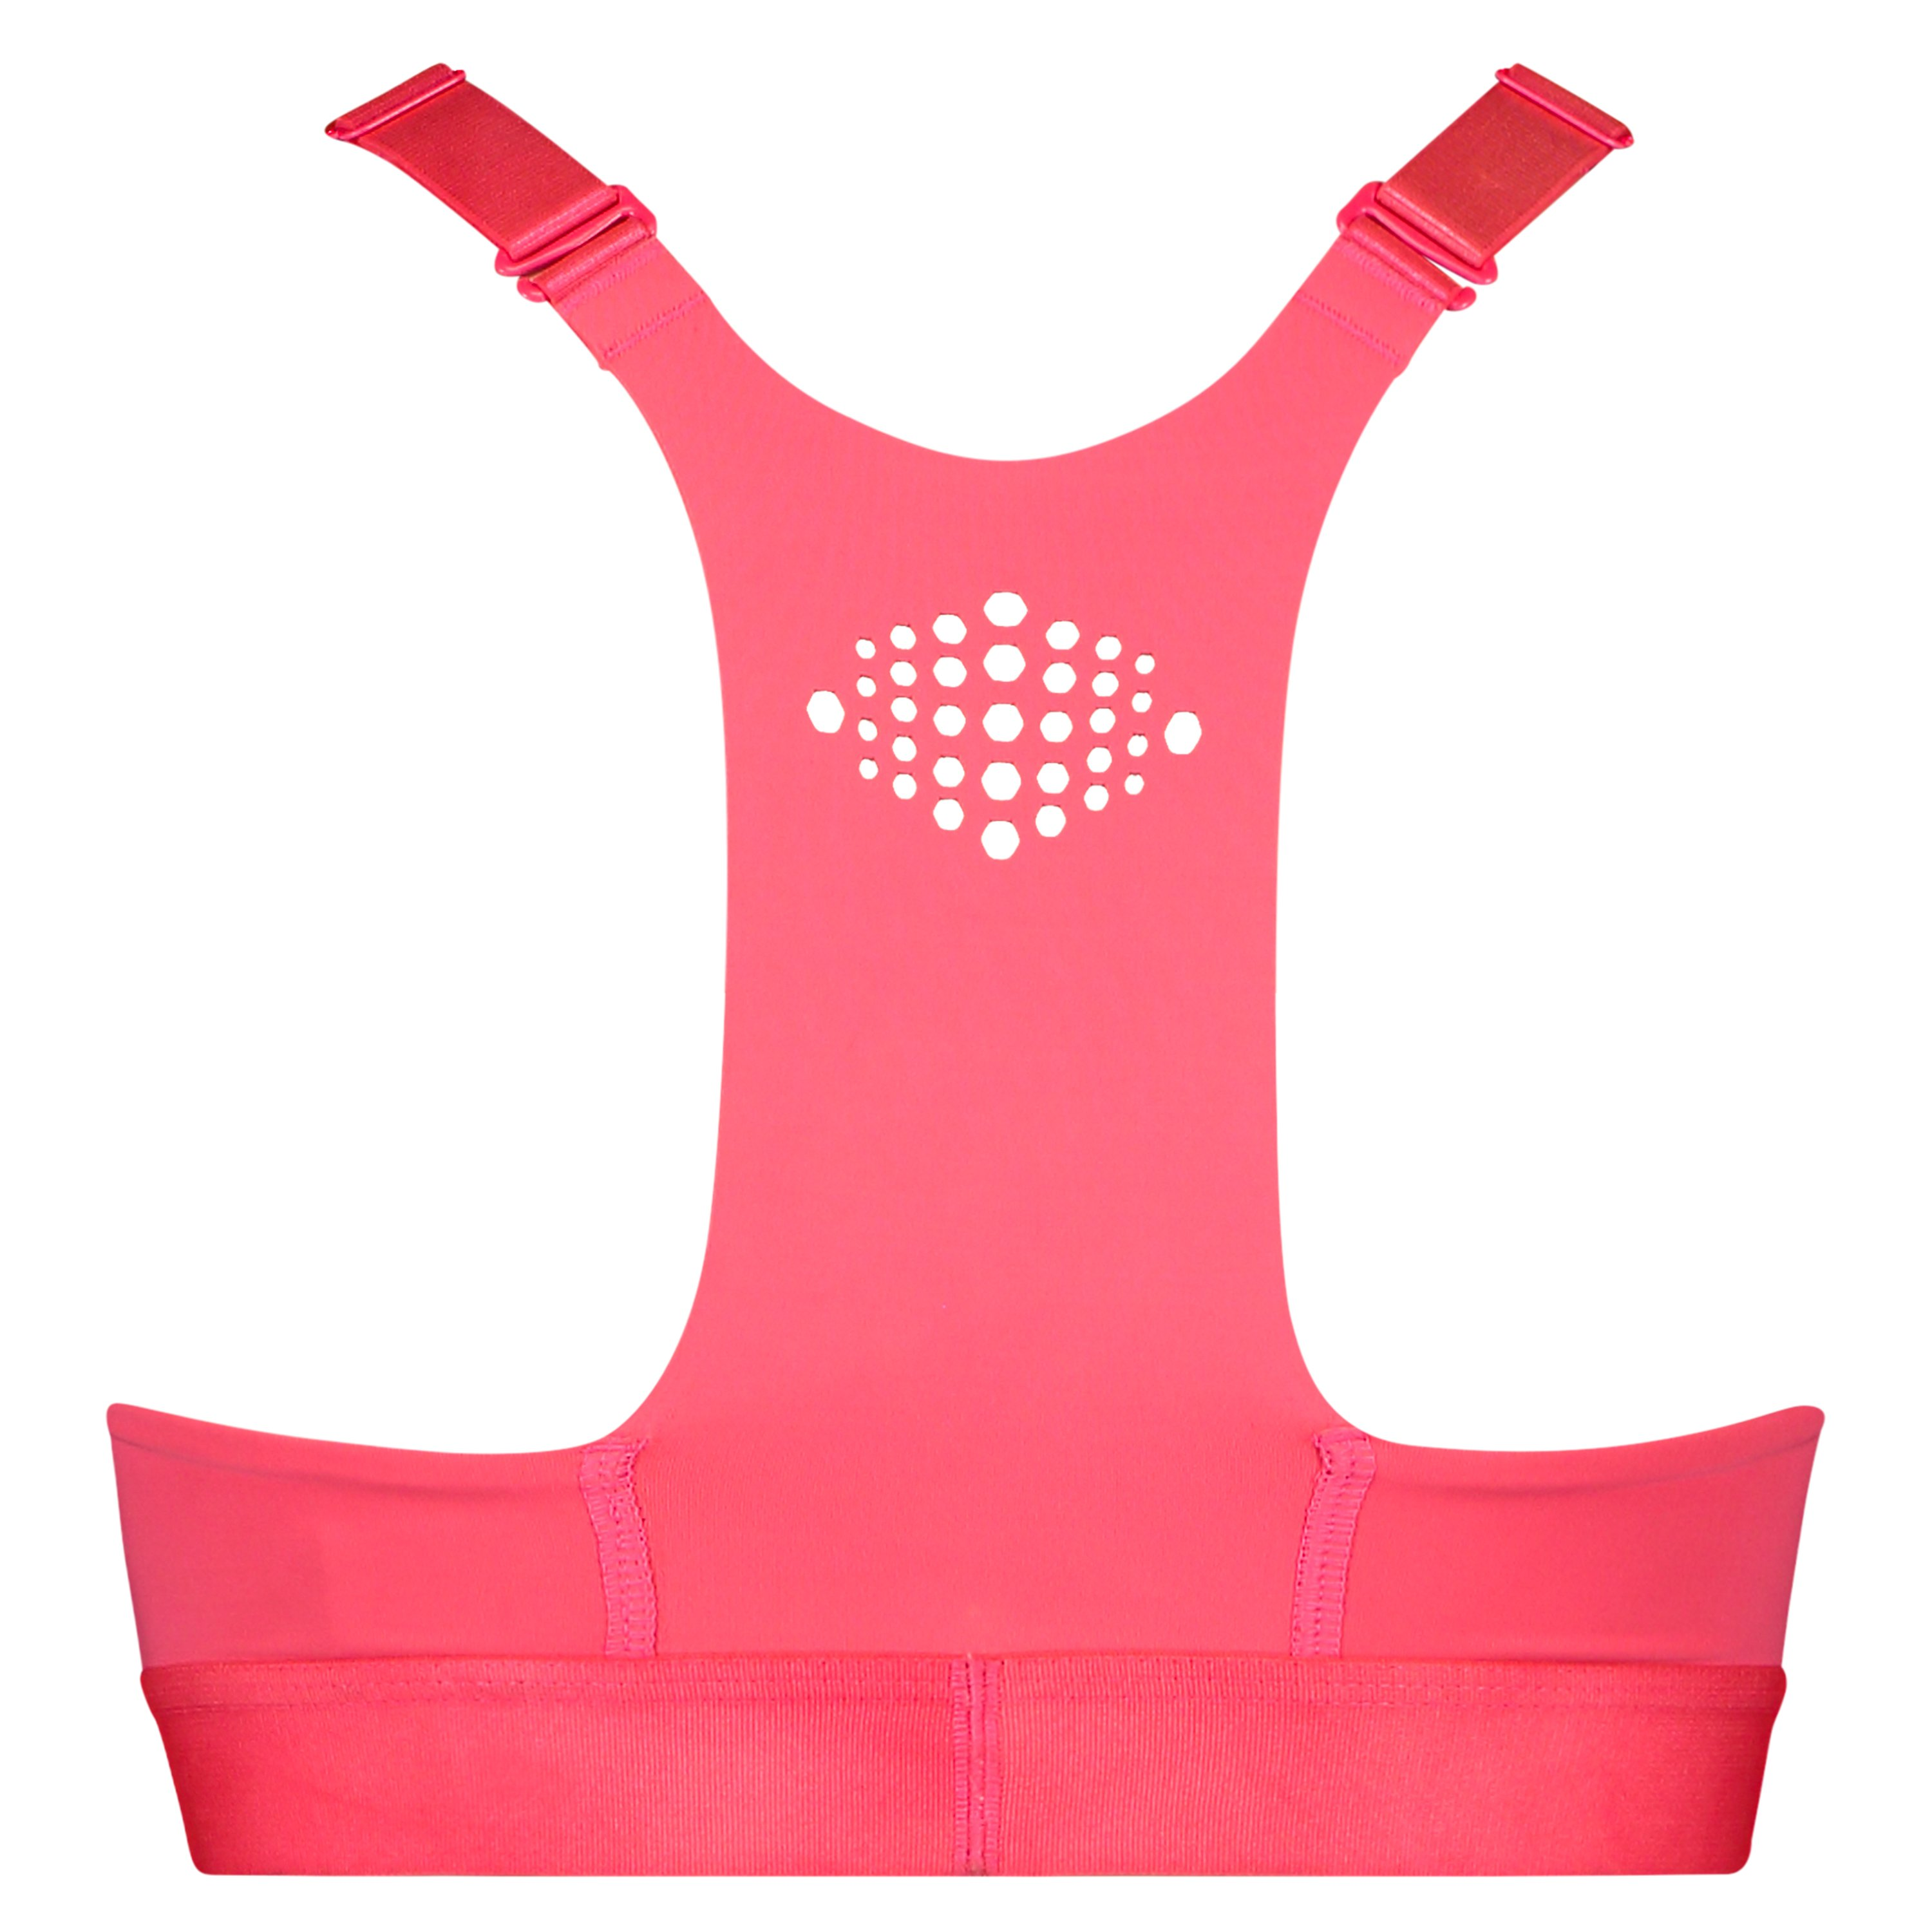 HKMX The Yoga Crop sports-bh level 2, pink, main